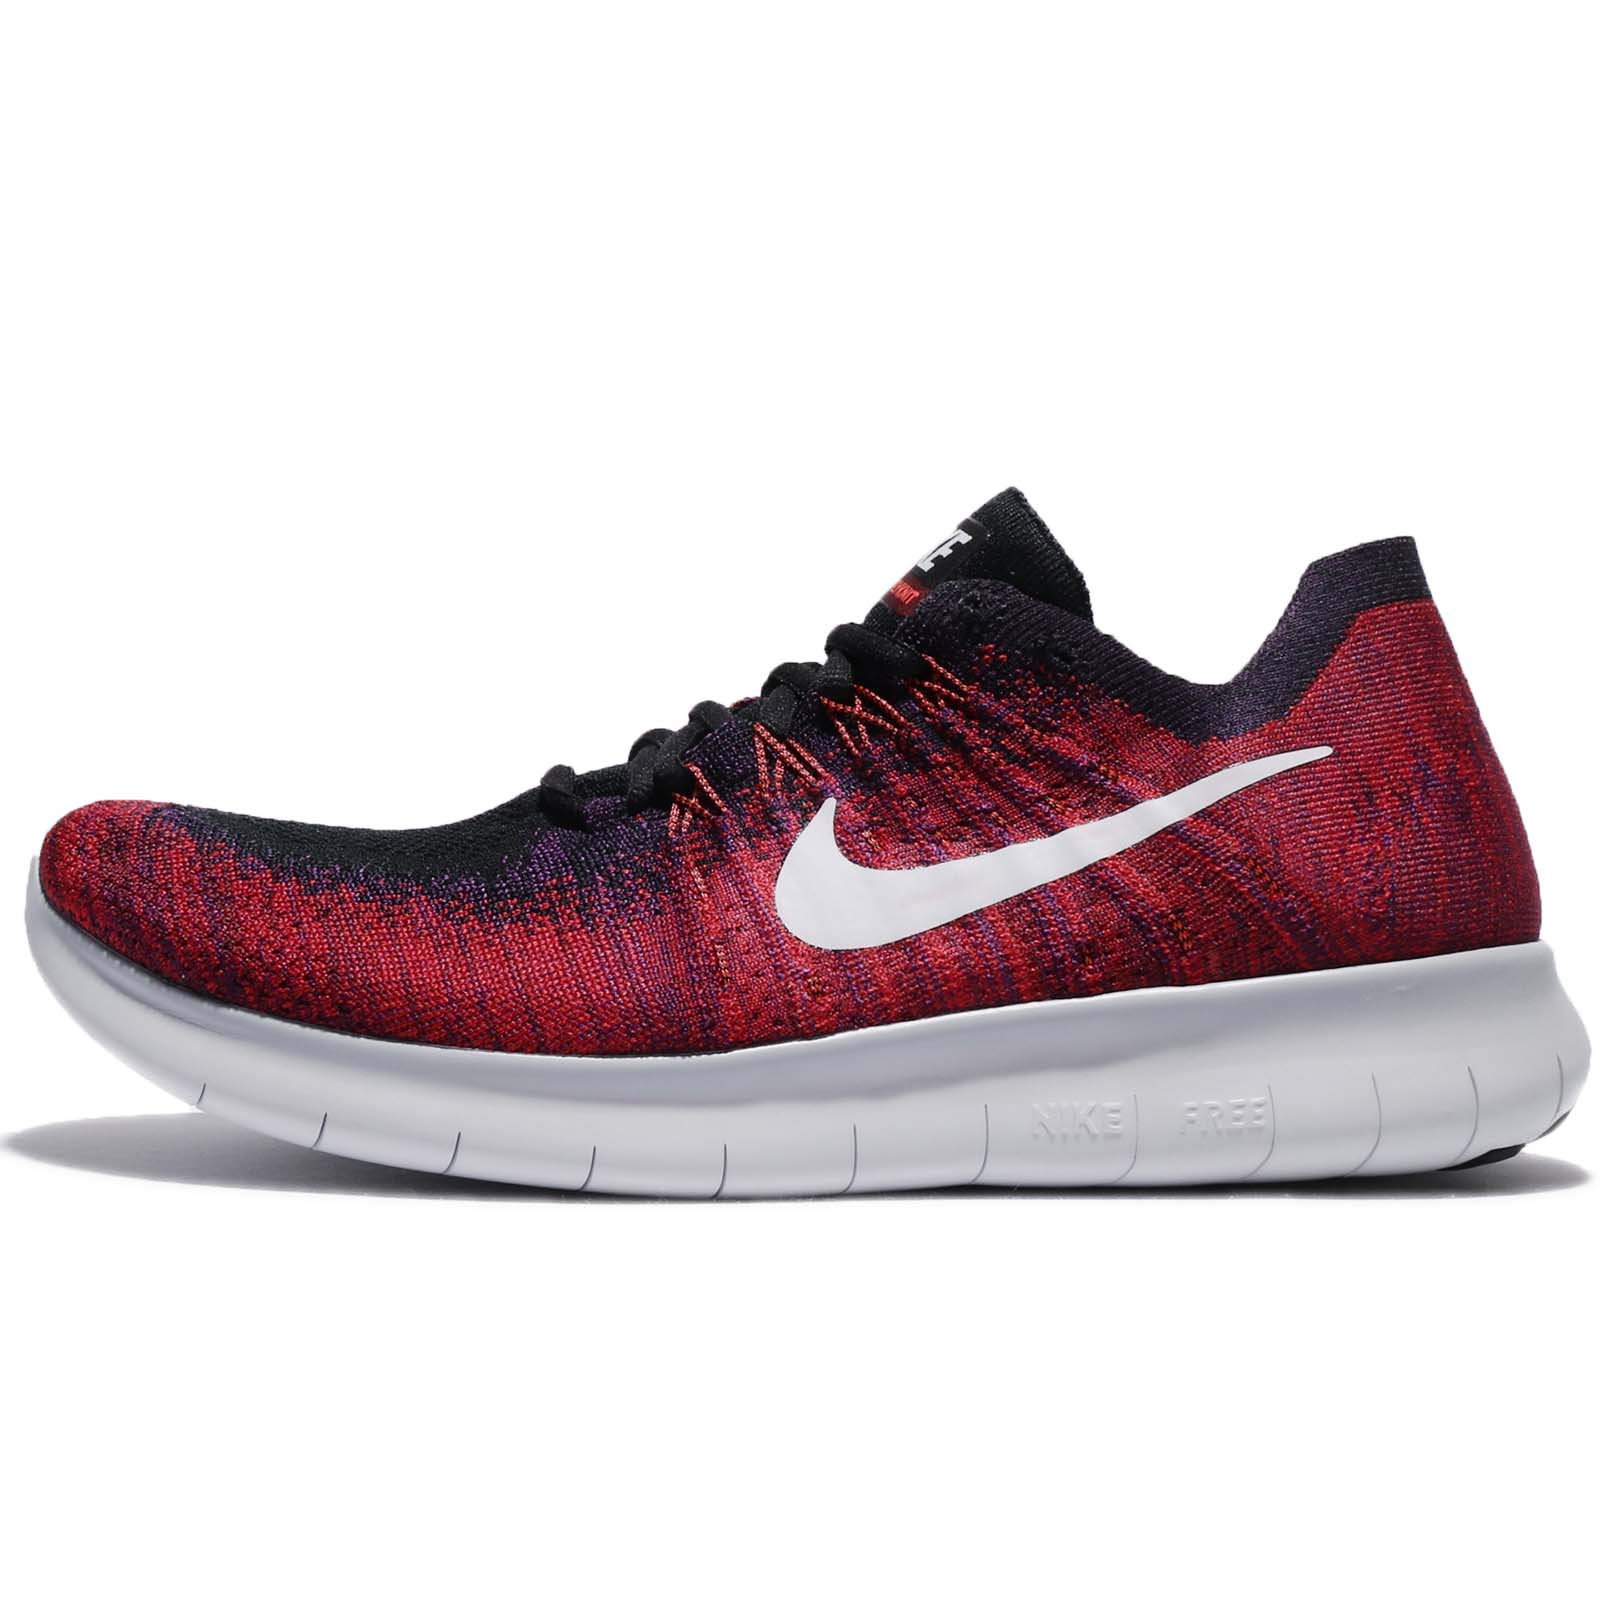 dad89e8664e2 Galleon - NIKE Men s Free RN Flyknit 2017 Running Shoes (9